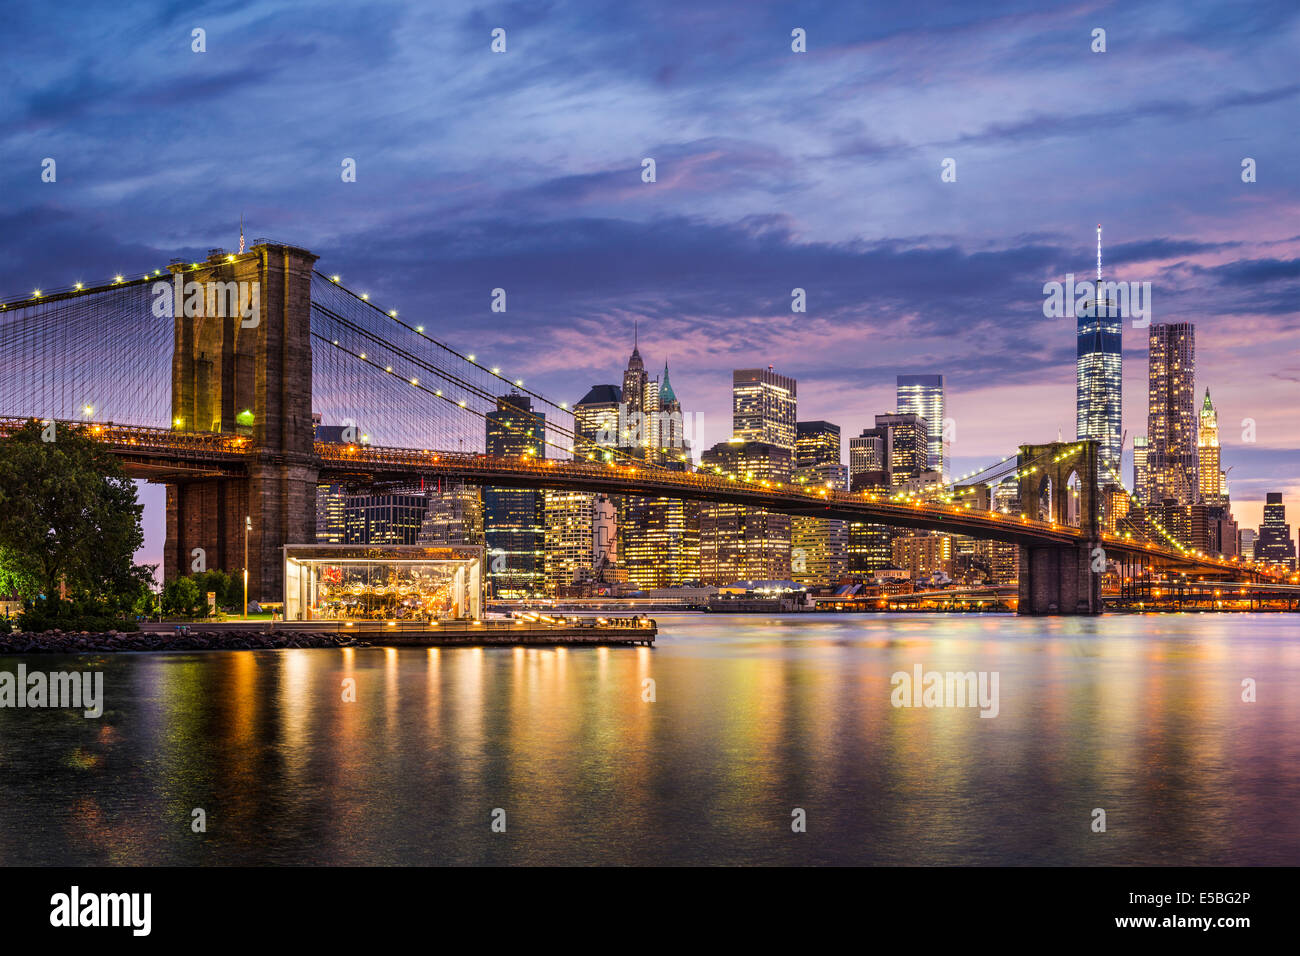 New York City, USA at twilight. - Stock Image